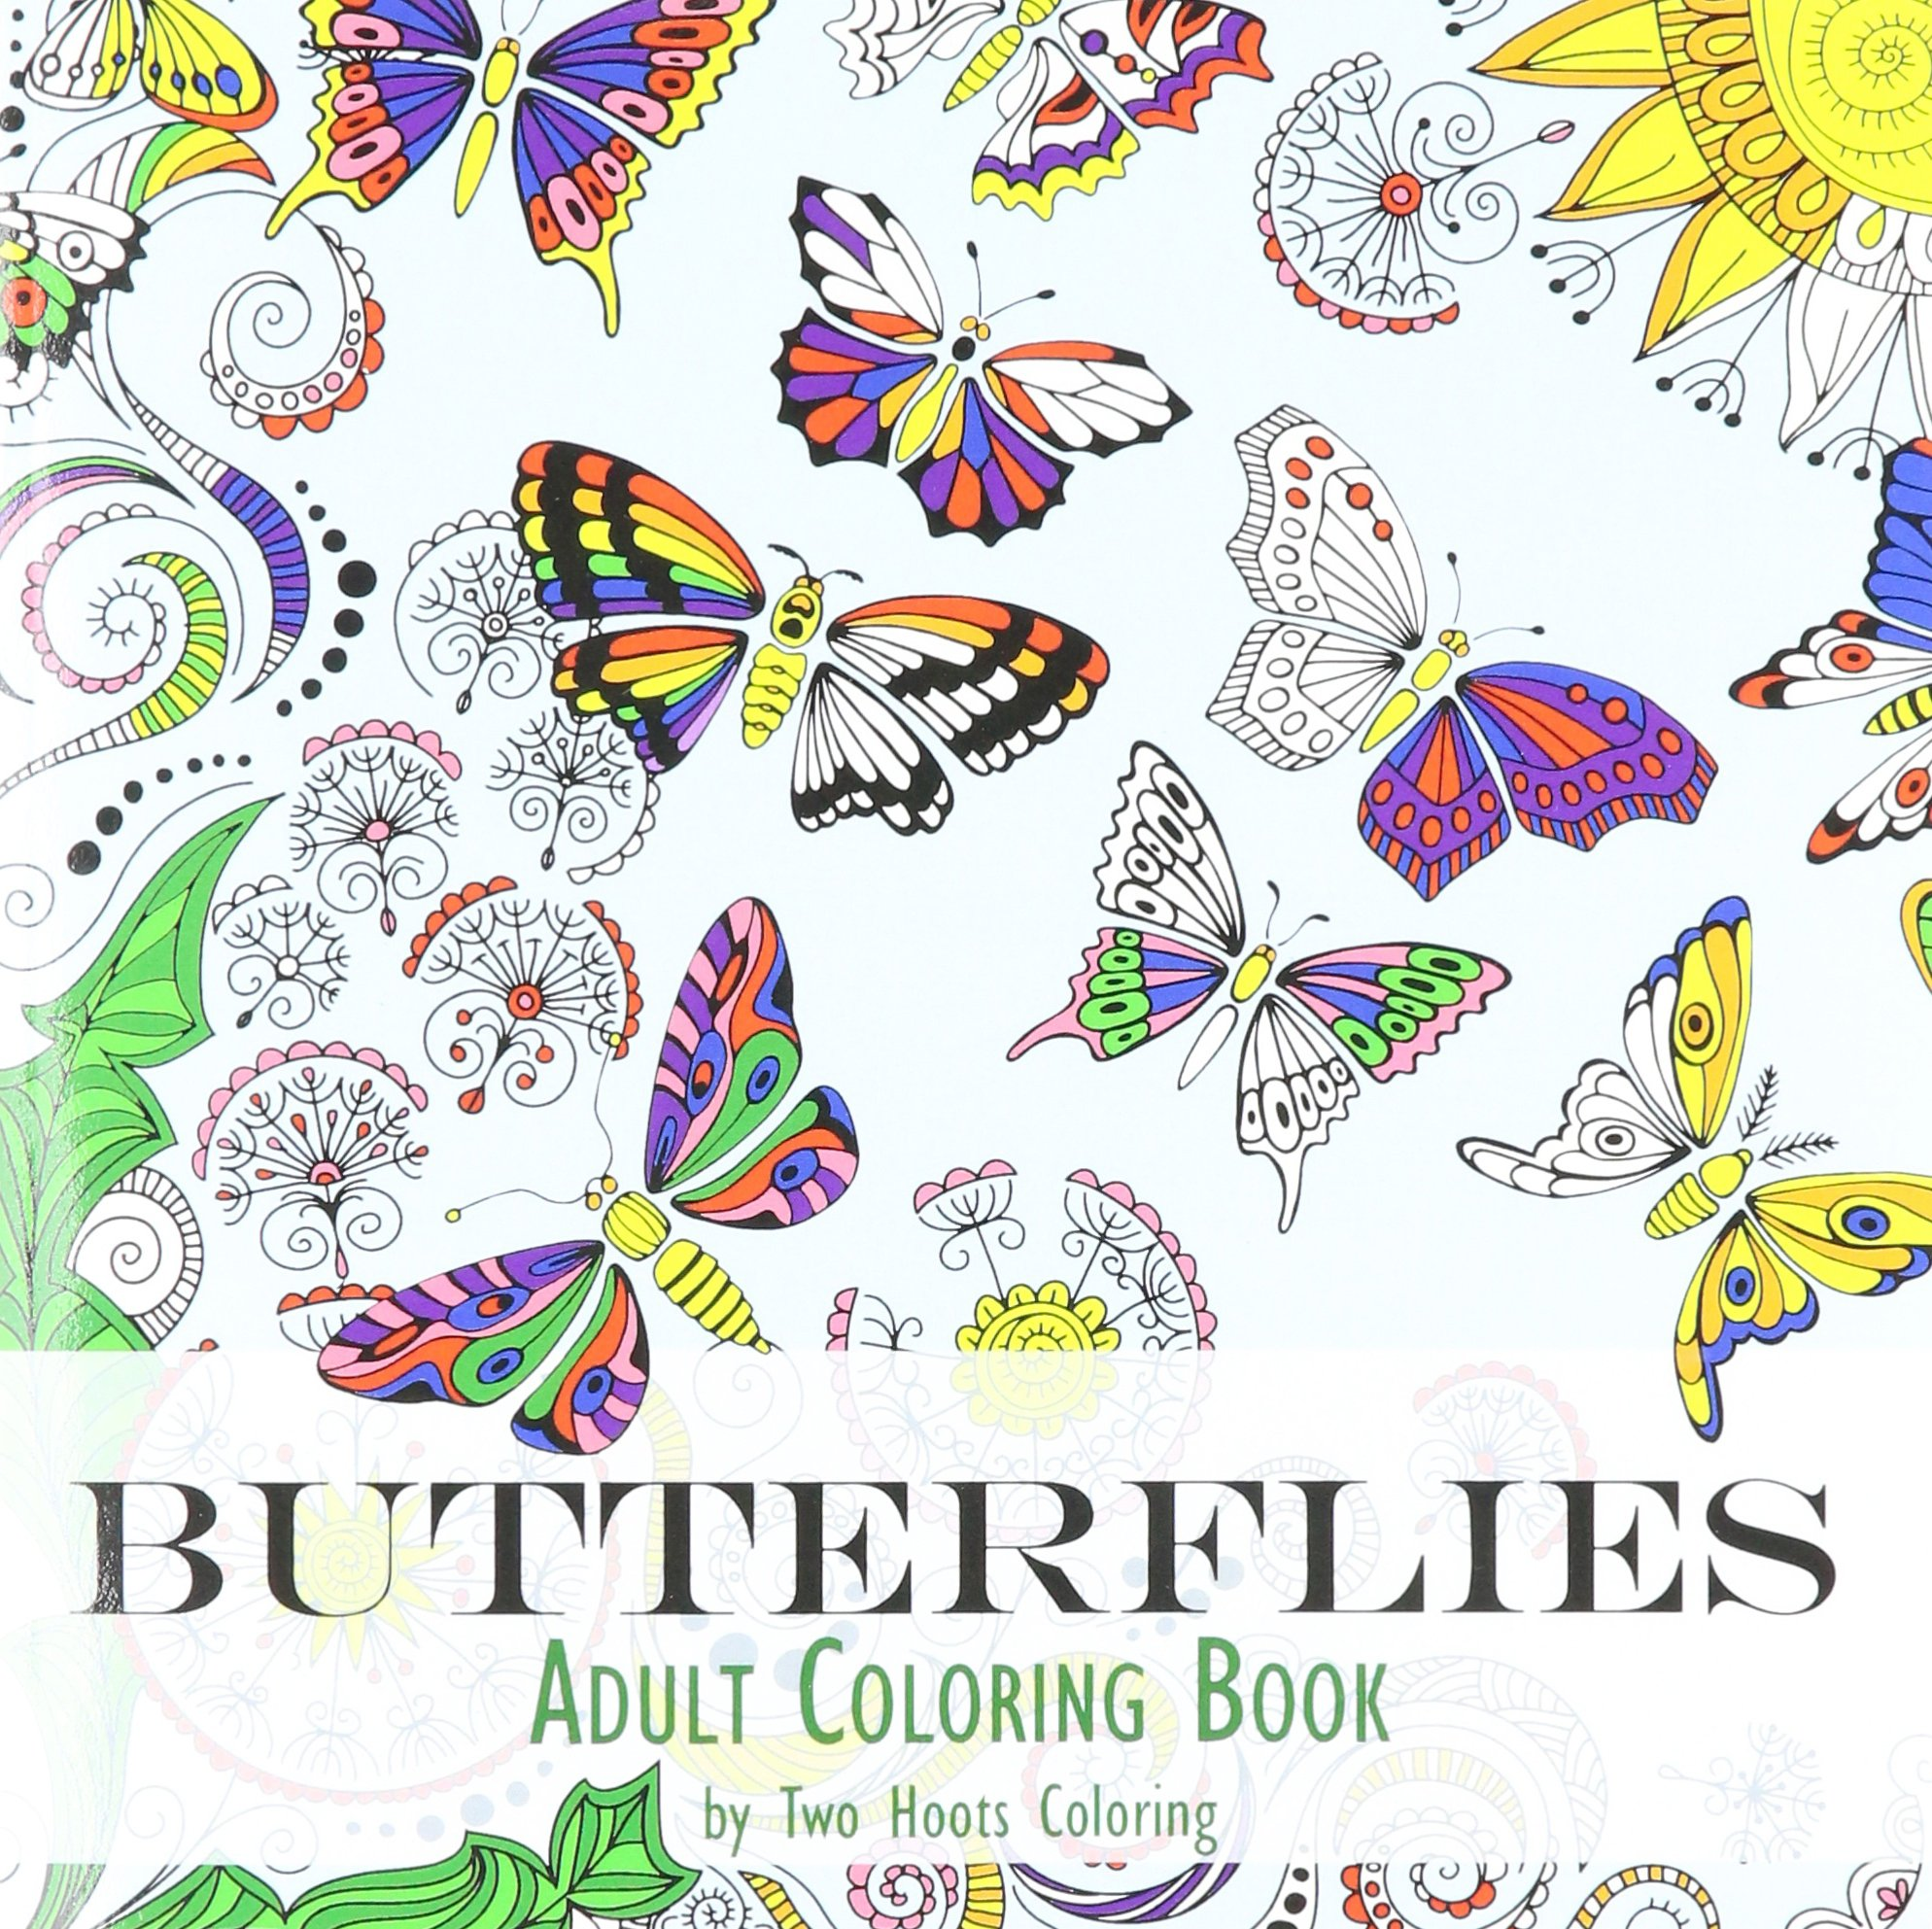 Adult Coloring Book Butterflies Two Hoots 9780692603789 Amazon Books